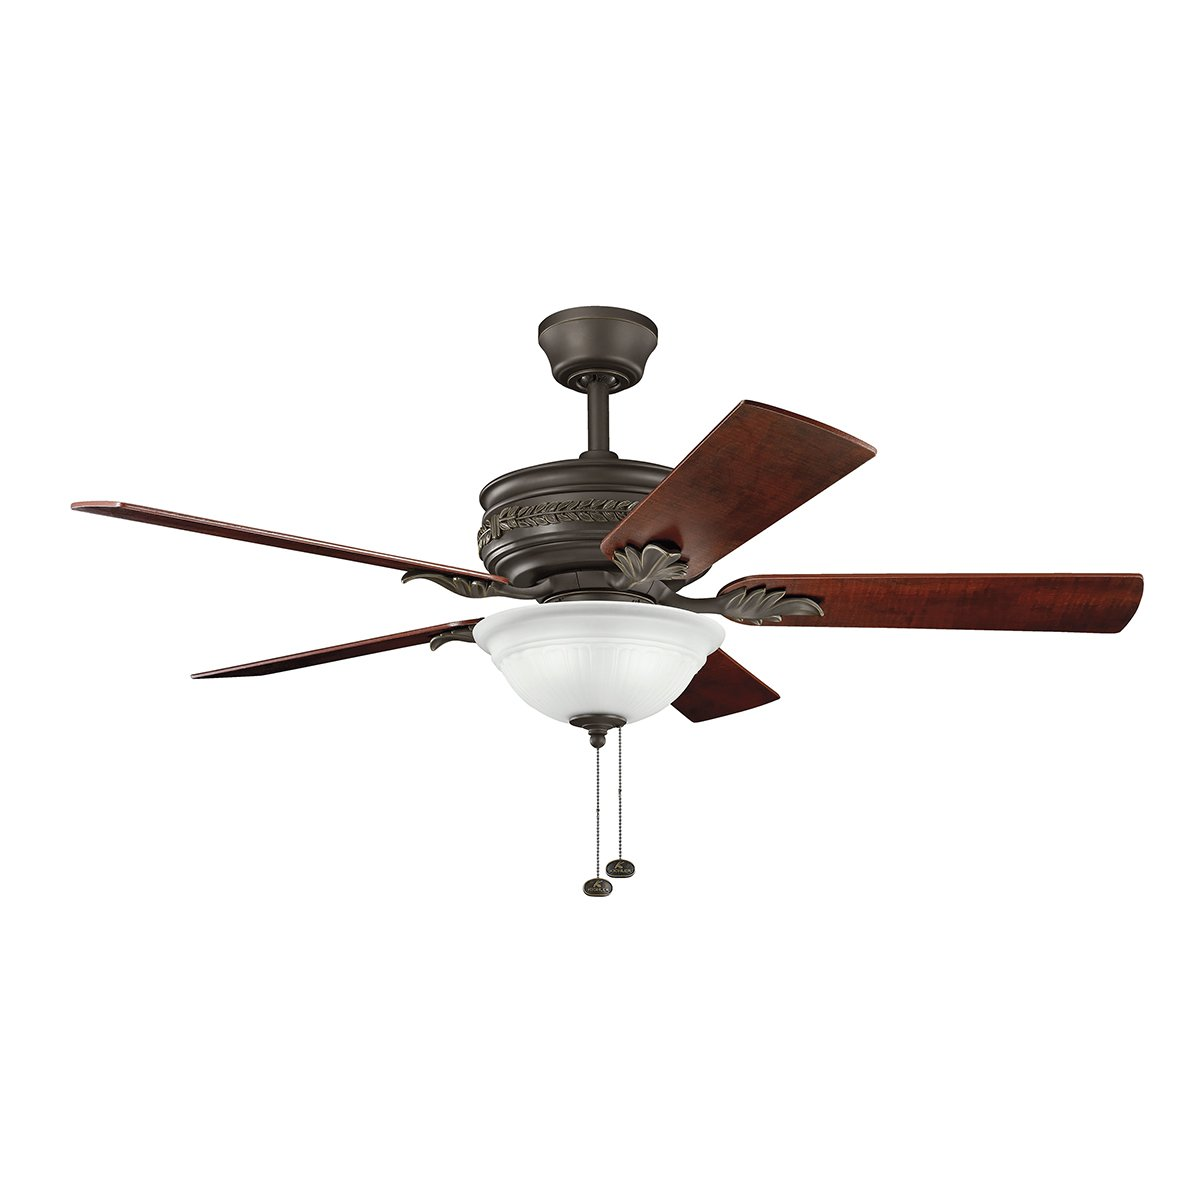 Kichler lighting 300158snb athens 52 inch ceiling fan satin kichler lighting 300158snb athens 52 inch ceiling fan satin natural bronze finish with reversible walnutlipplewood blades and etched opal light kit aloadofball Choice Image